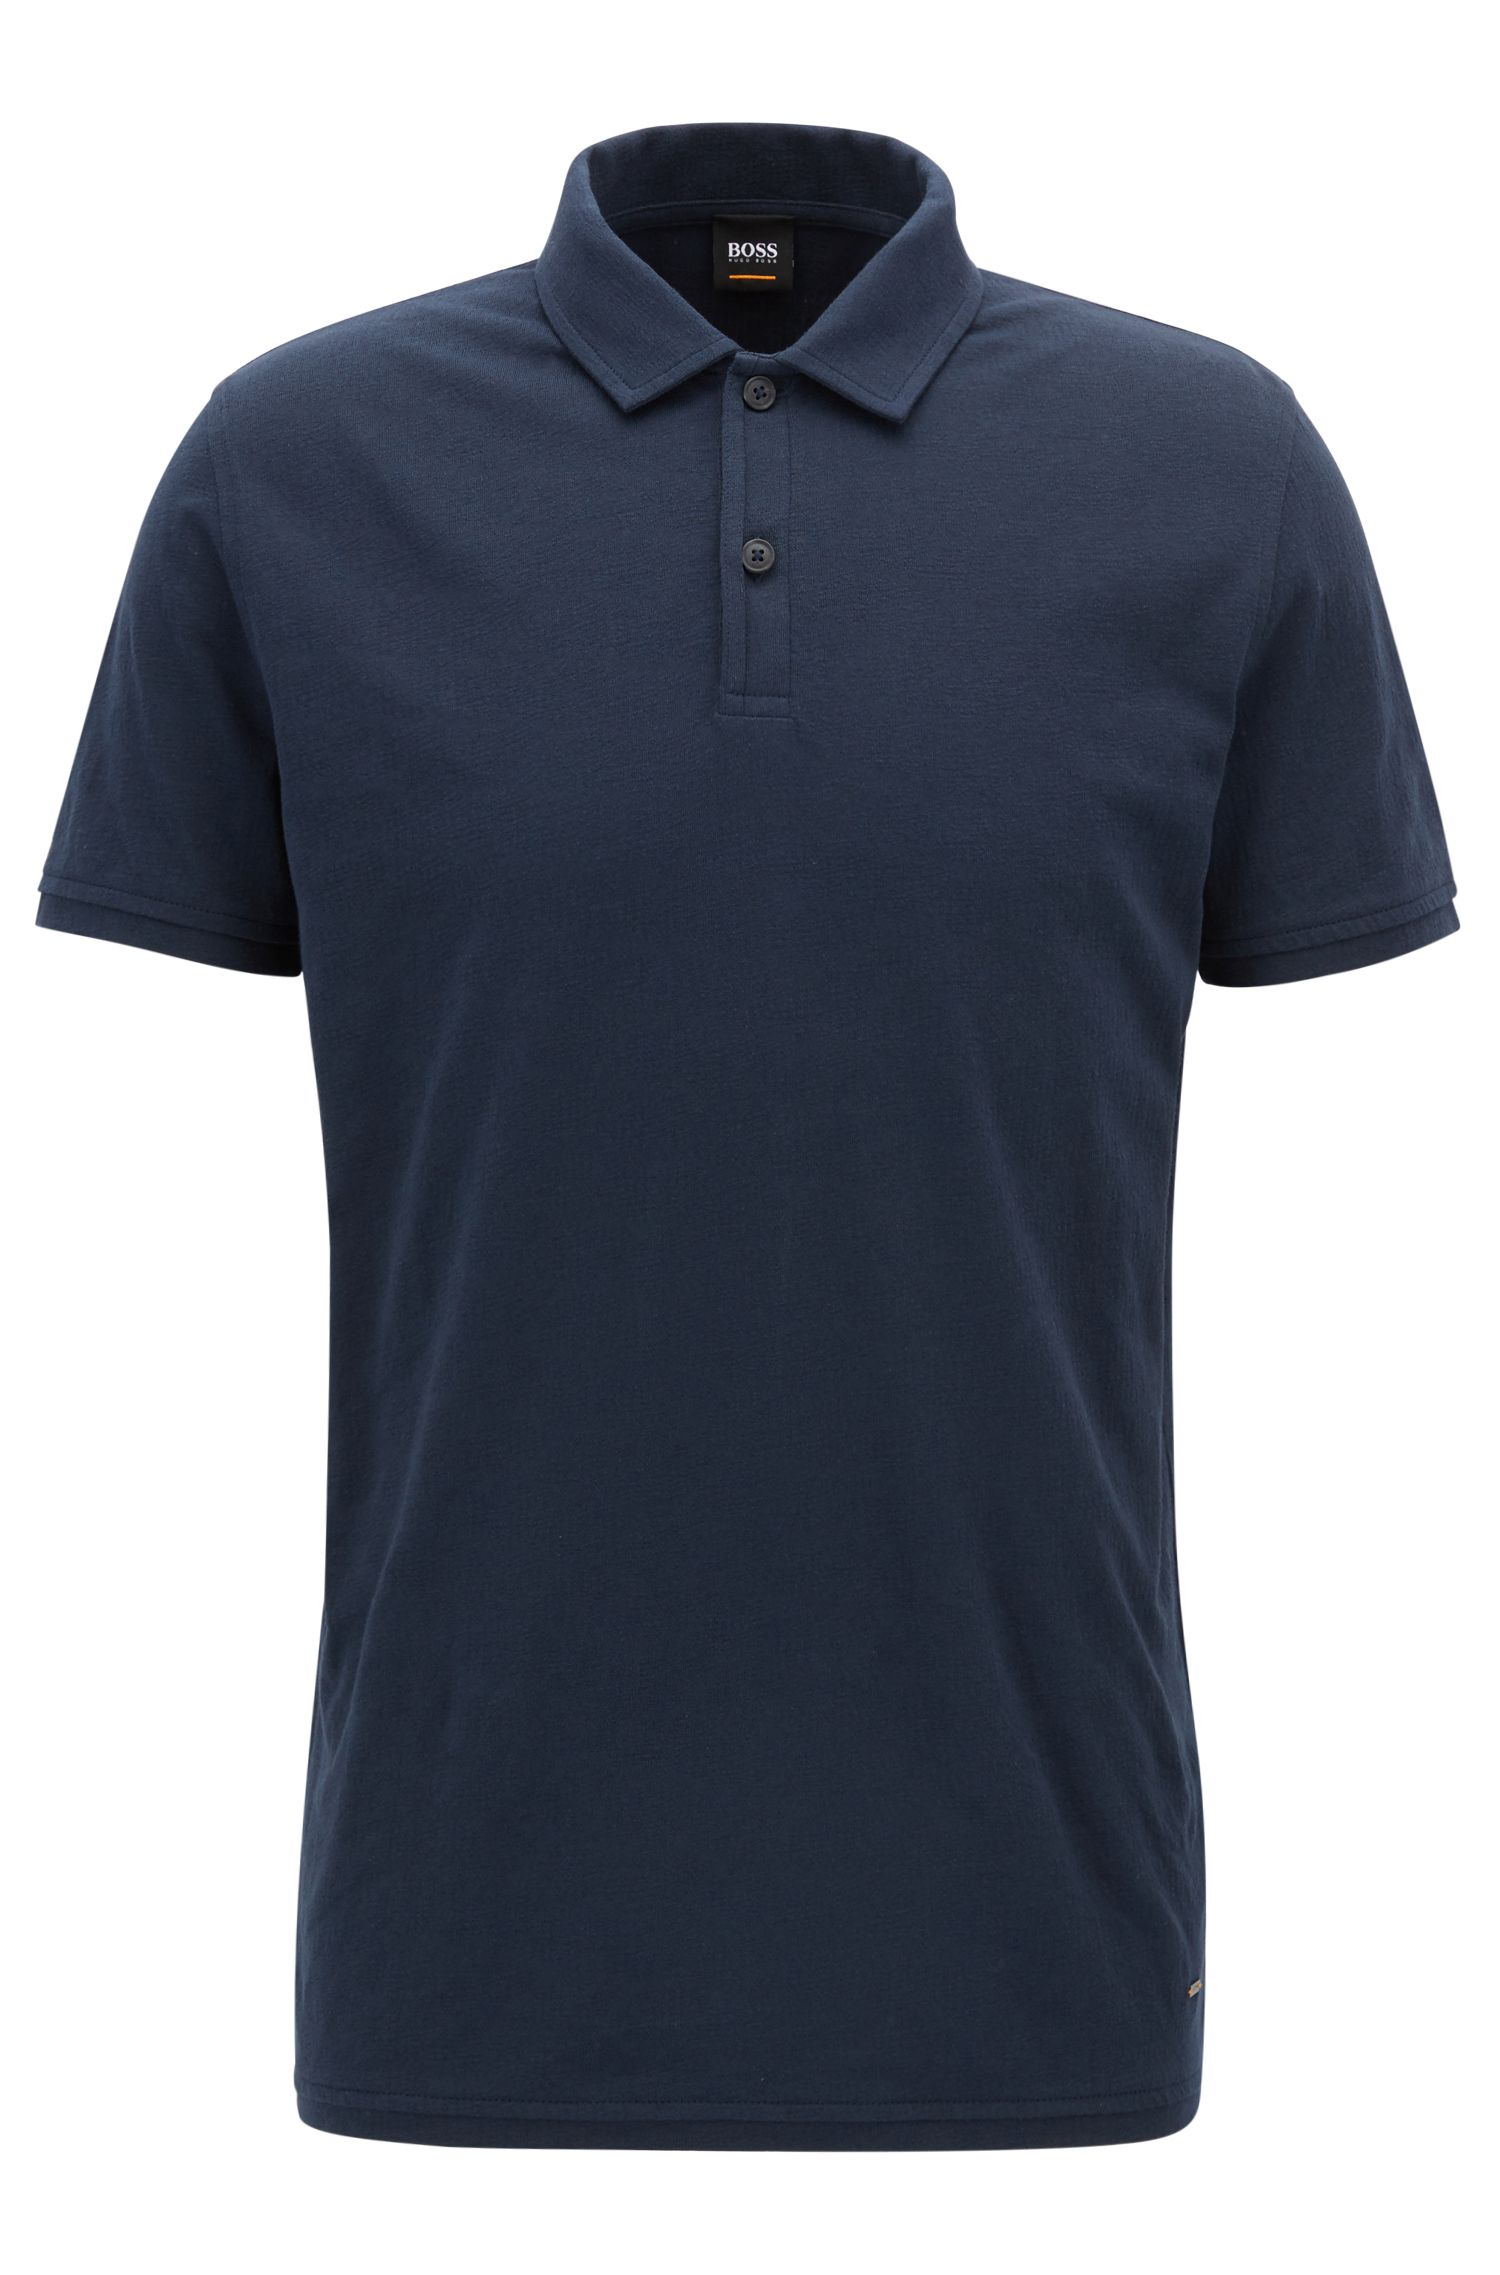 Regular-fit polo shirt in cotton jacquard jersey